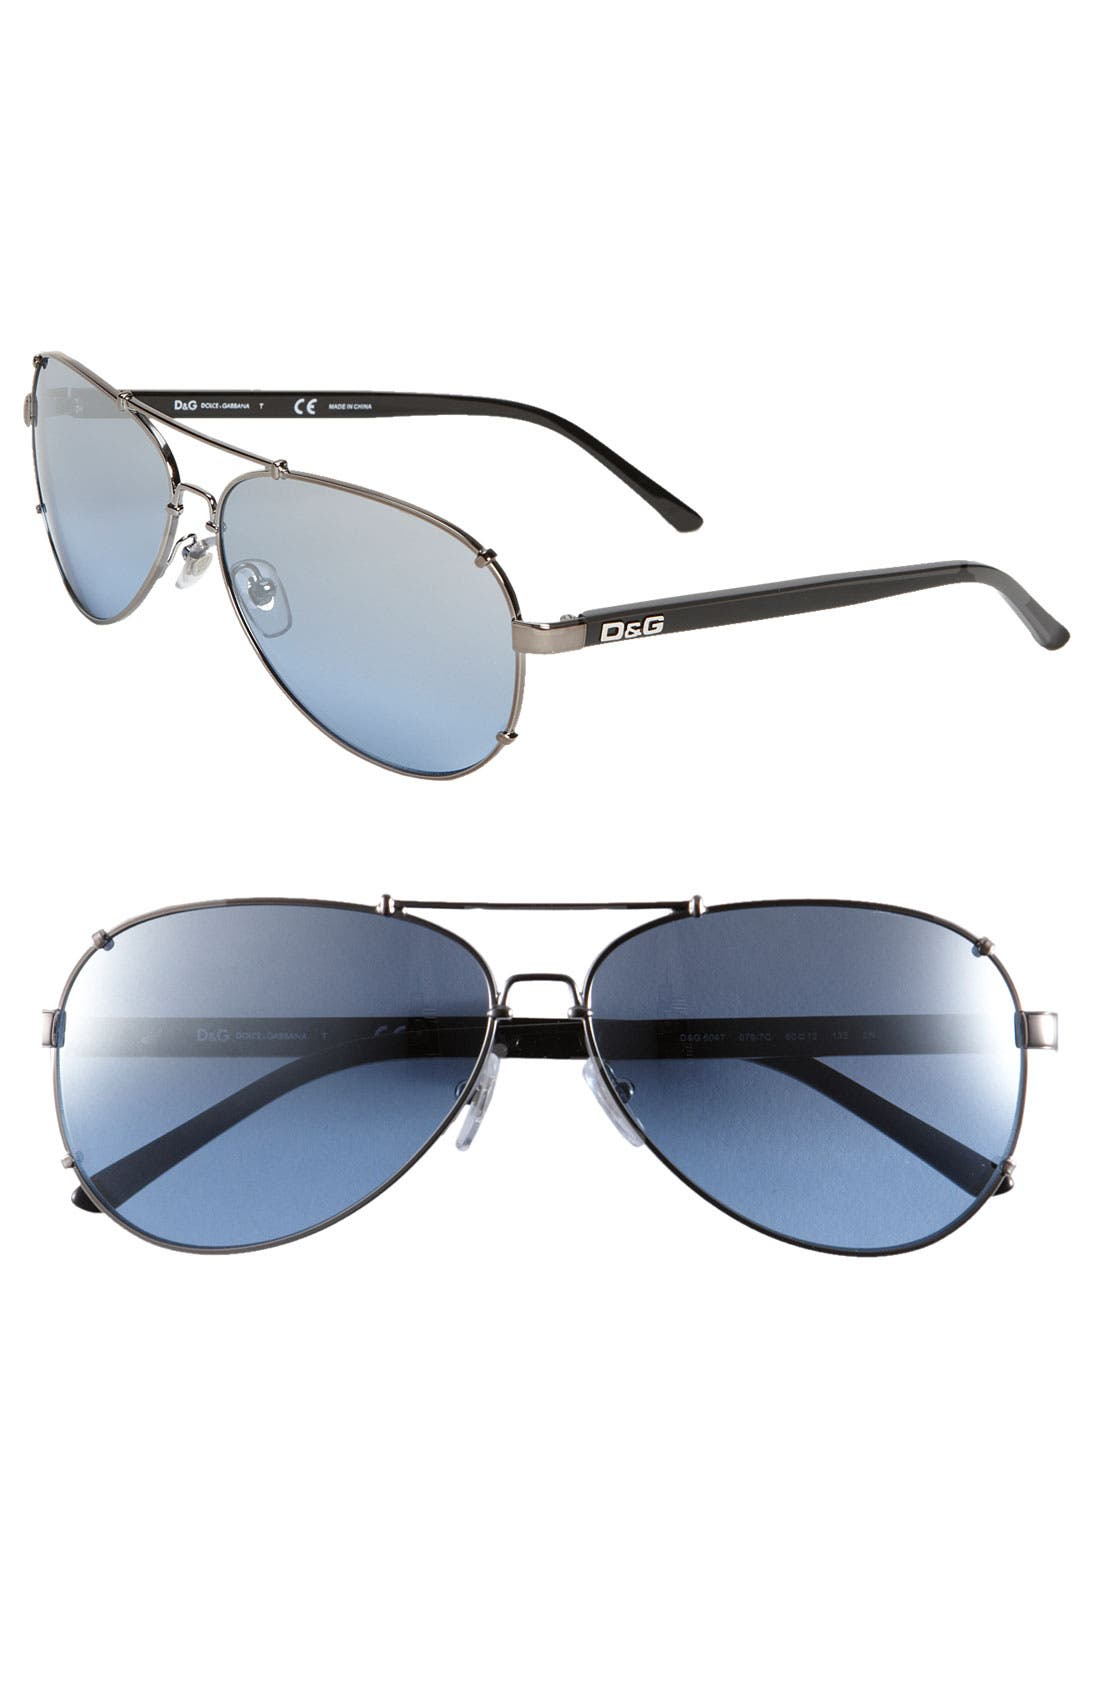 Main Image - D&G Metal Aviator Sunglasses